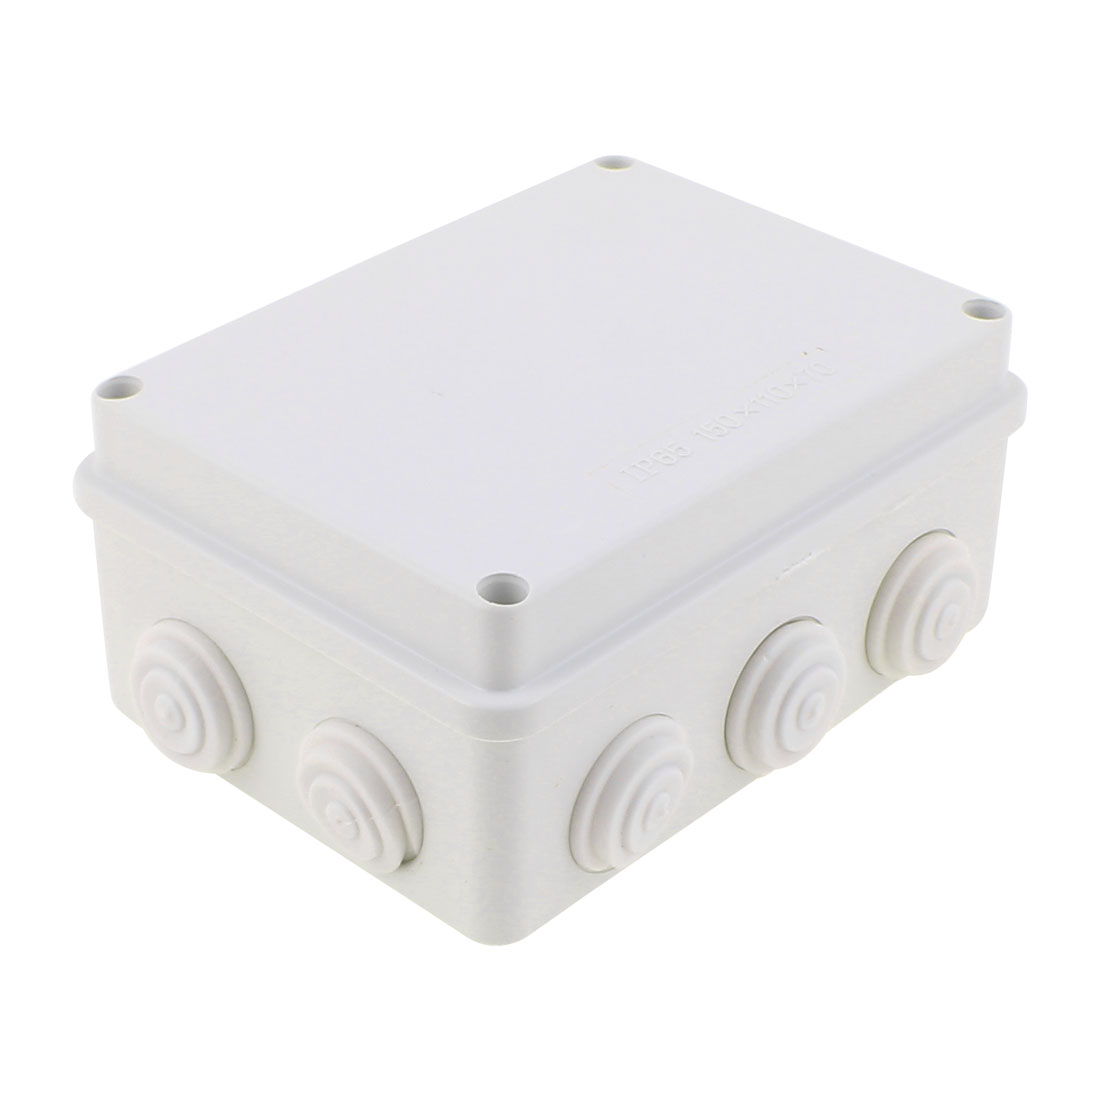 150 x 110 x 70mm Dustproof IP66 Junction Box DIY Sealed Terminal Box Enclosure